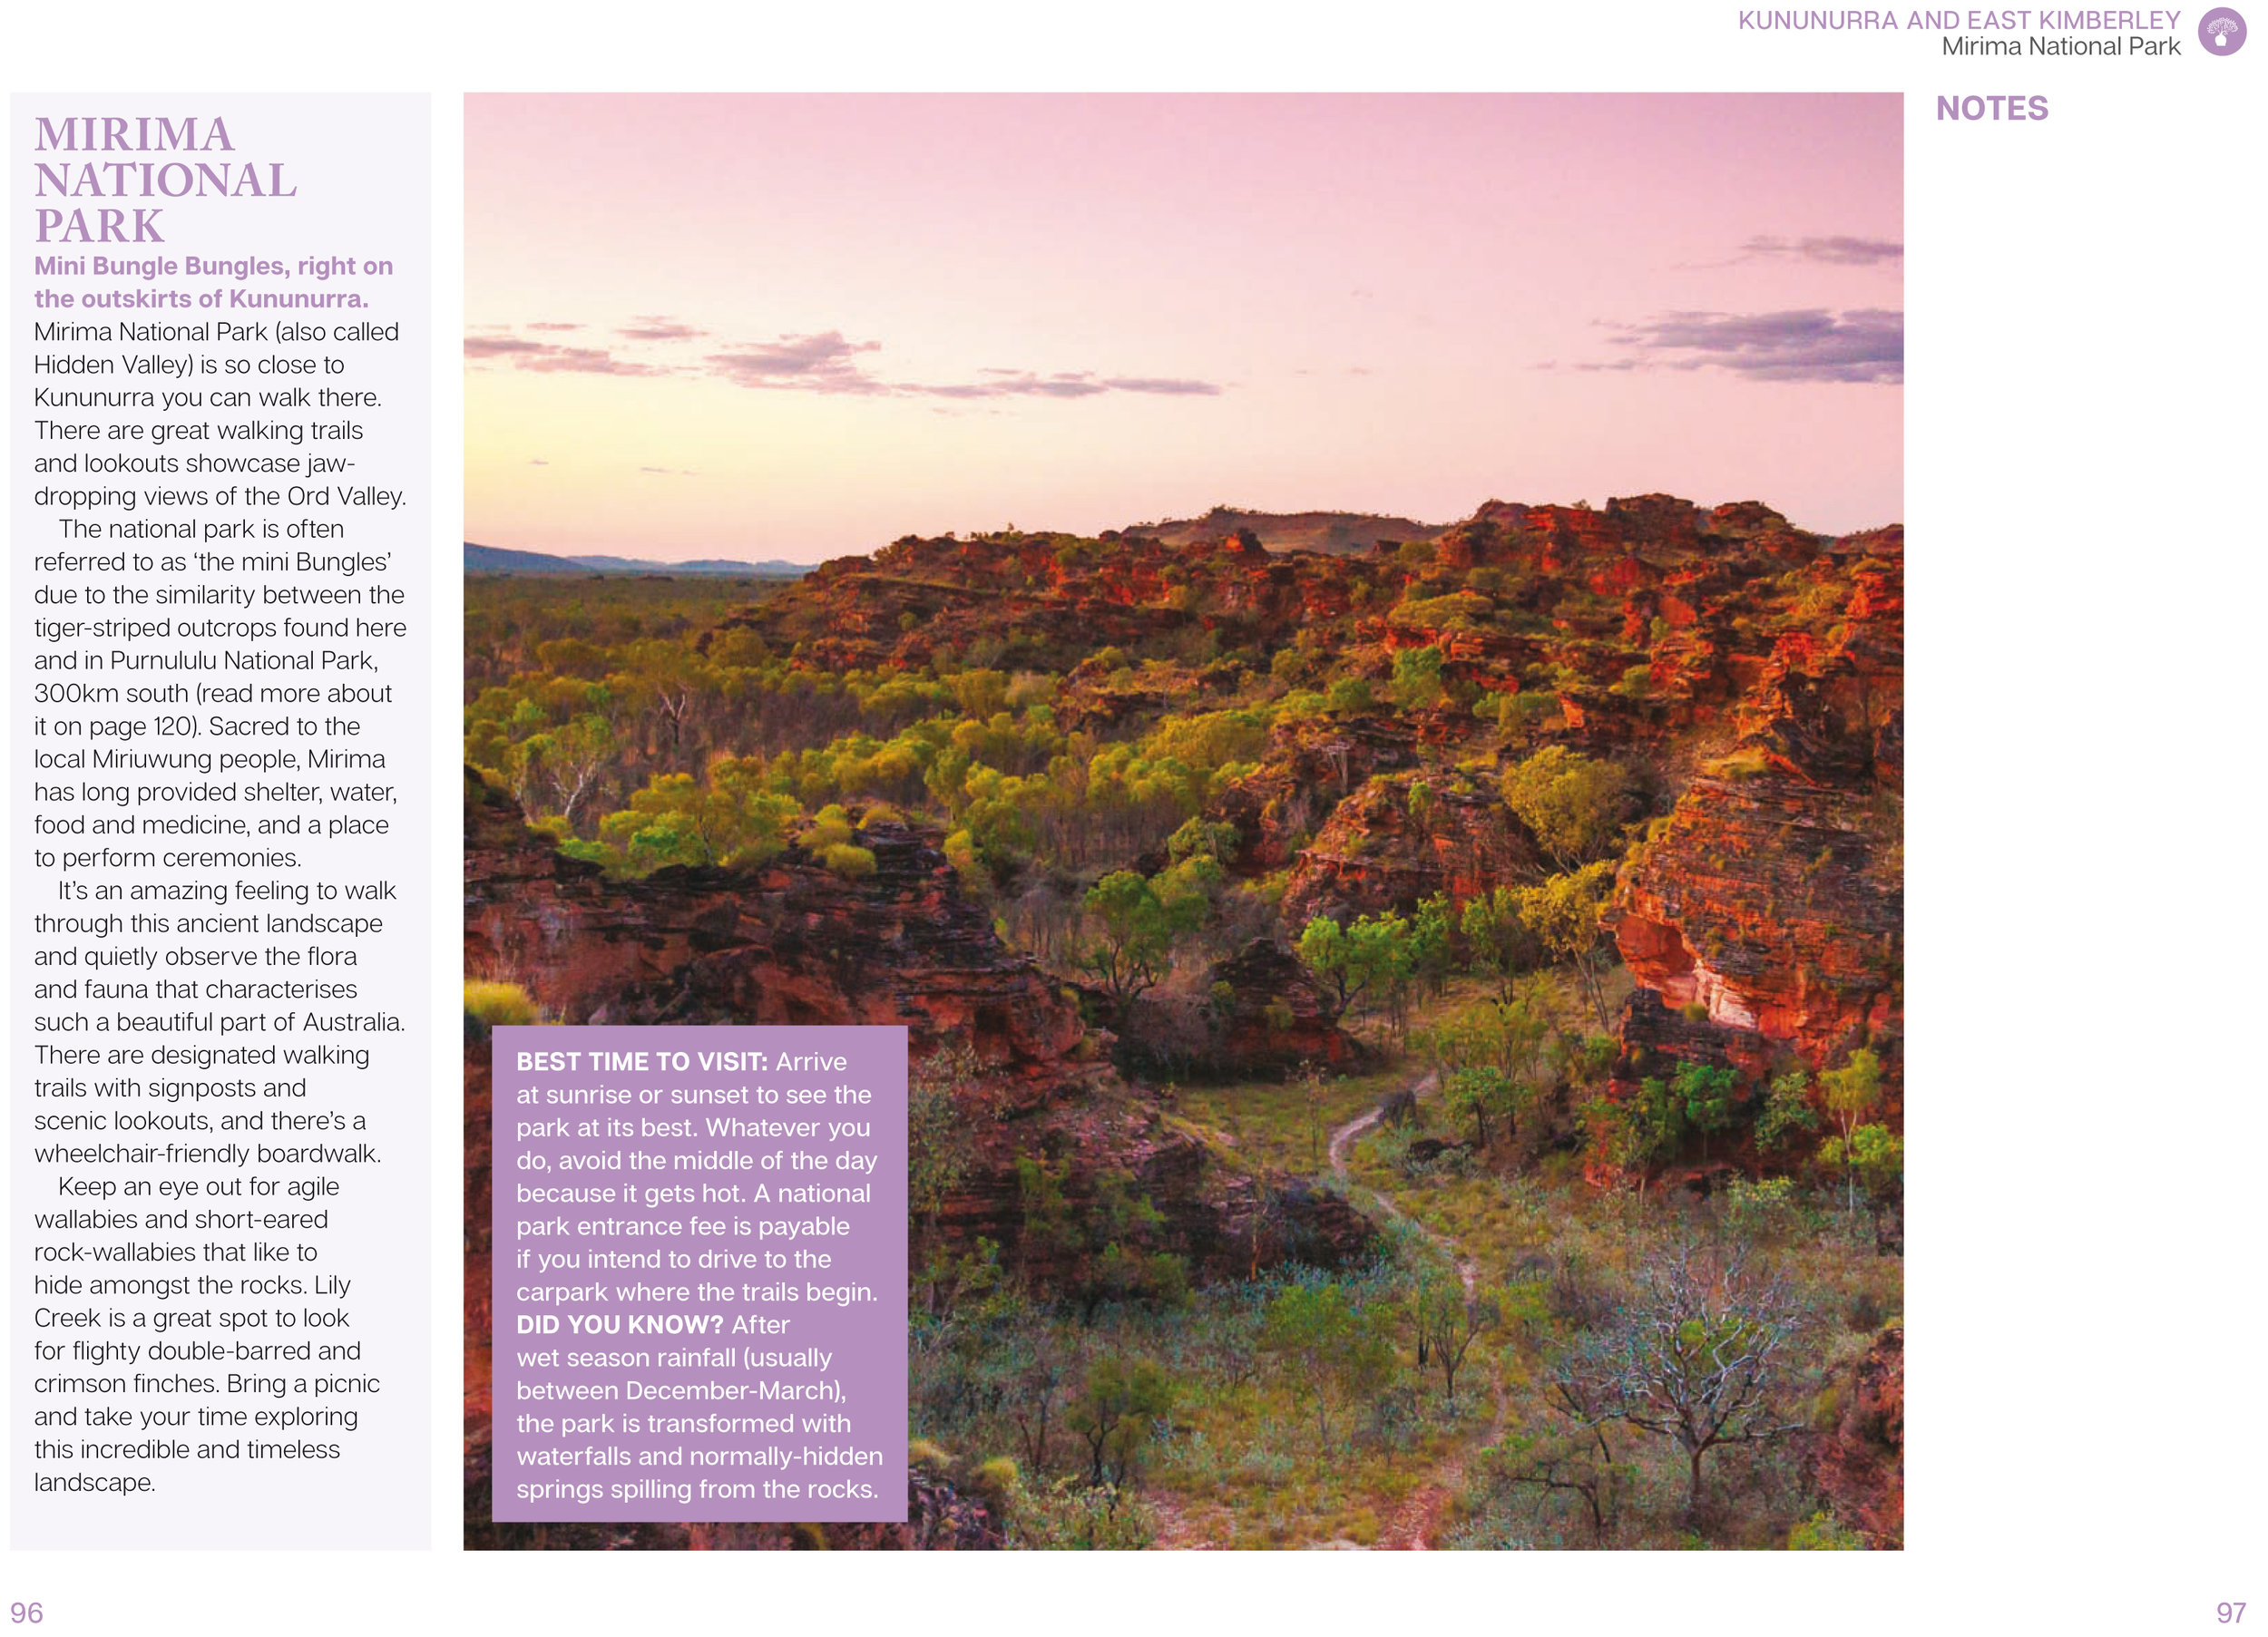 Read all about Mirima National Park in our book - 100 Things To See In The Kimberley